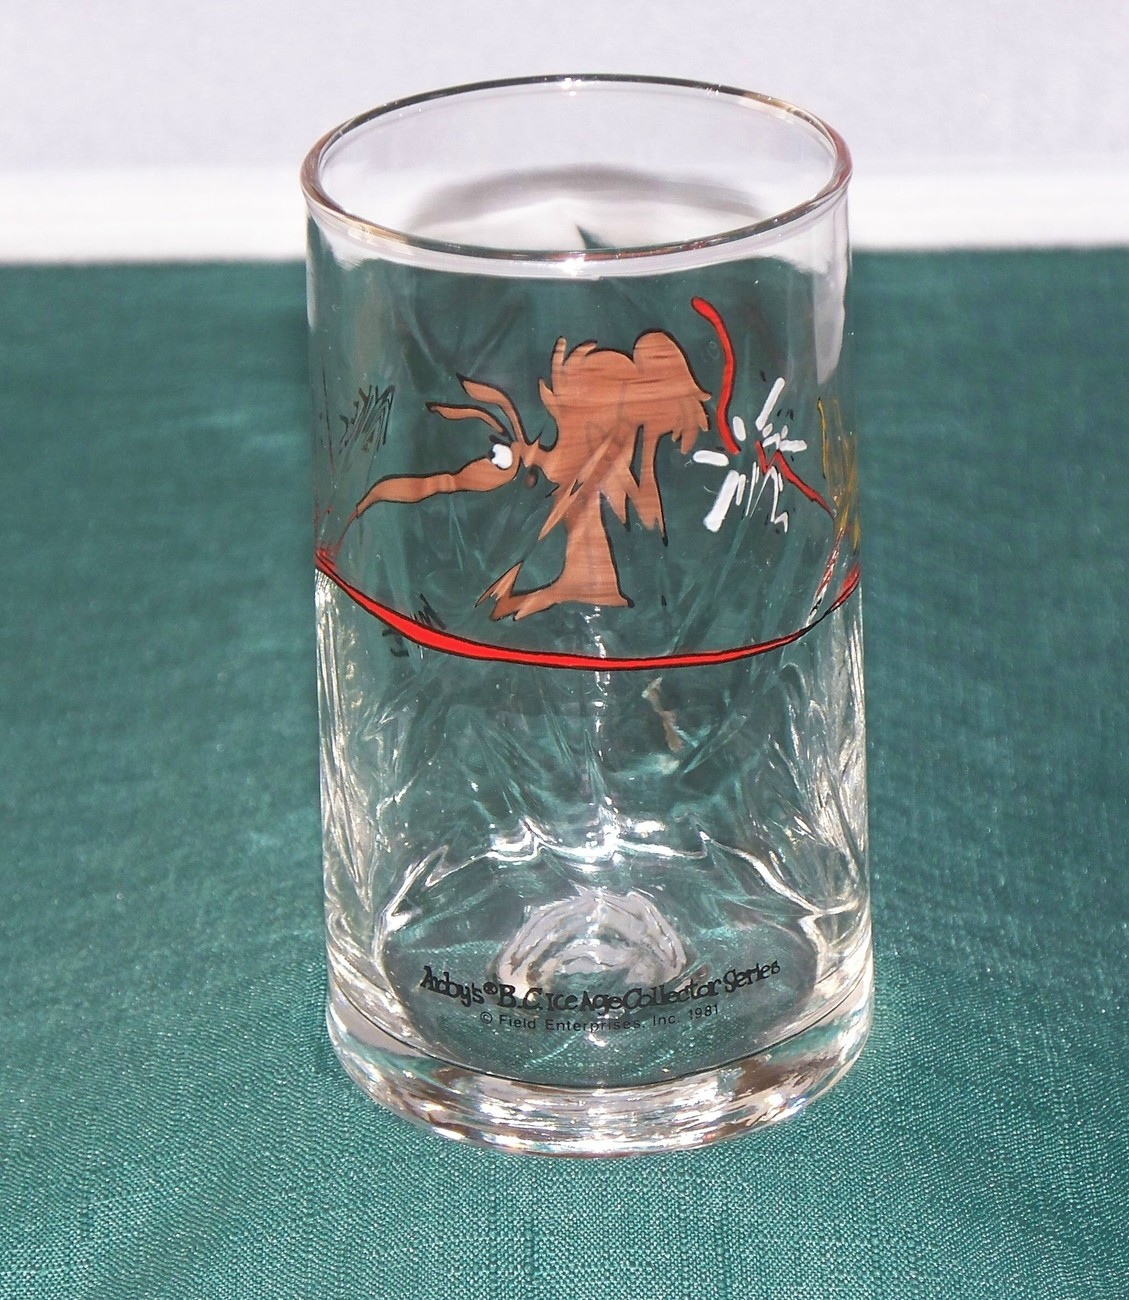 Arby's B.C. Ice Age Series Anteater Glass 1981 VGC